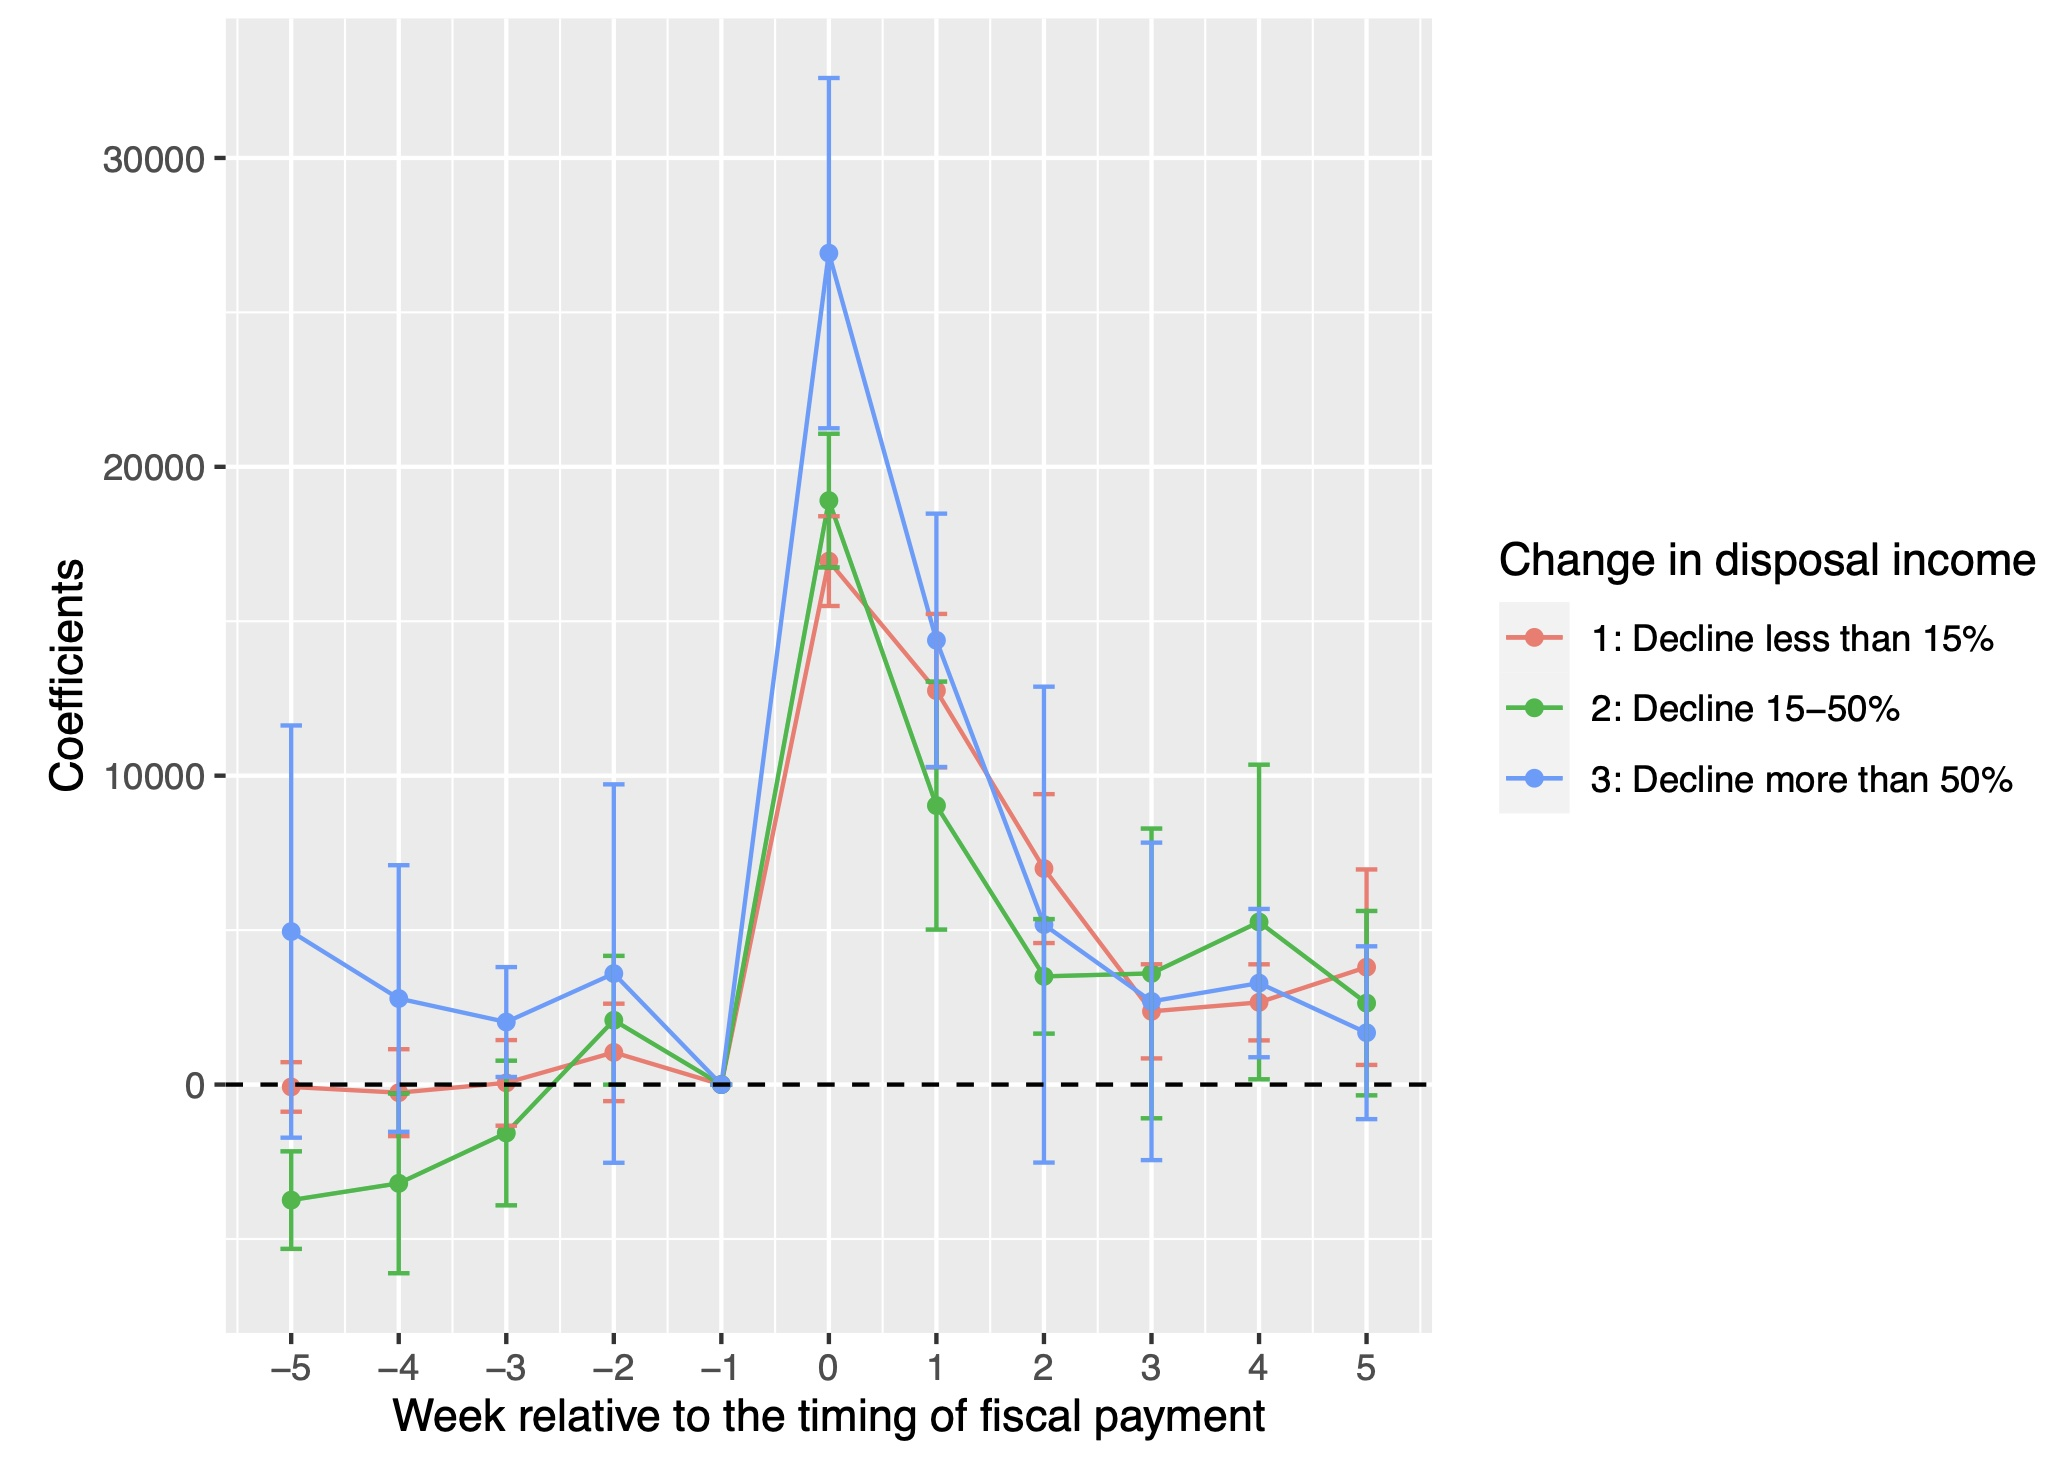 COVID-19 stimulus payments: Evidence from Japan 2